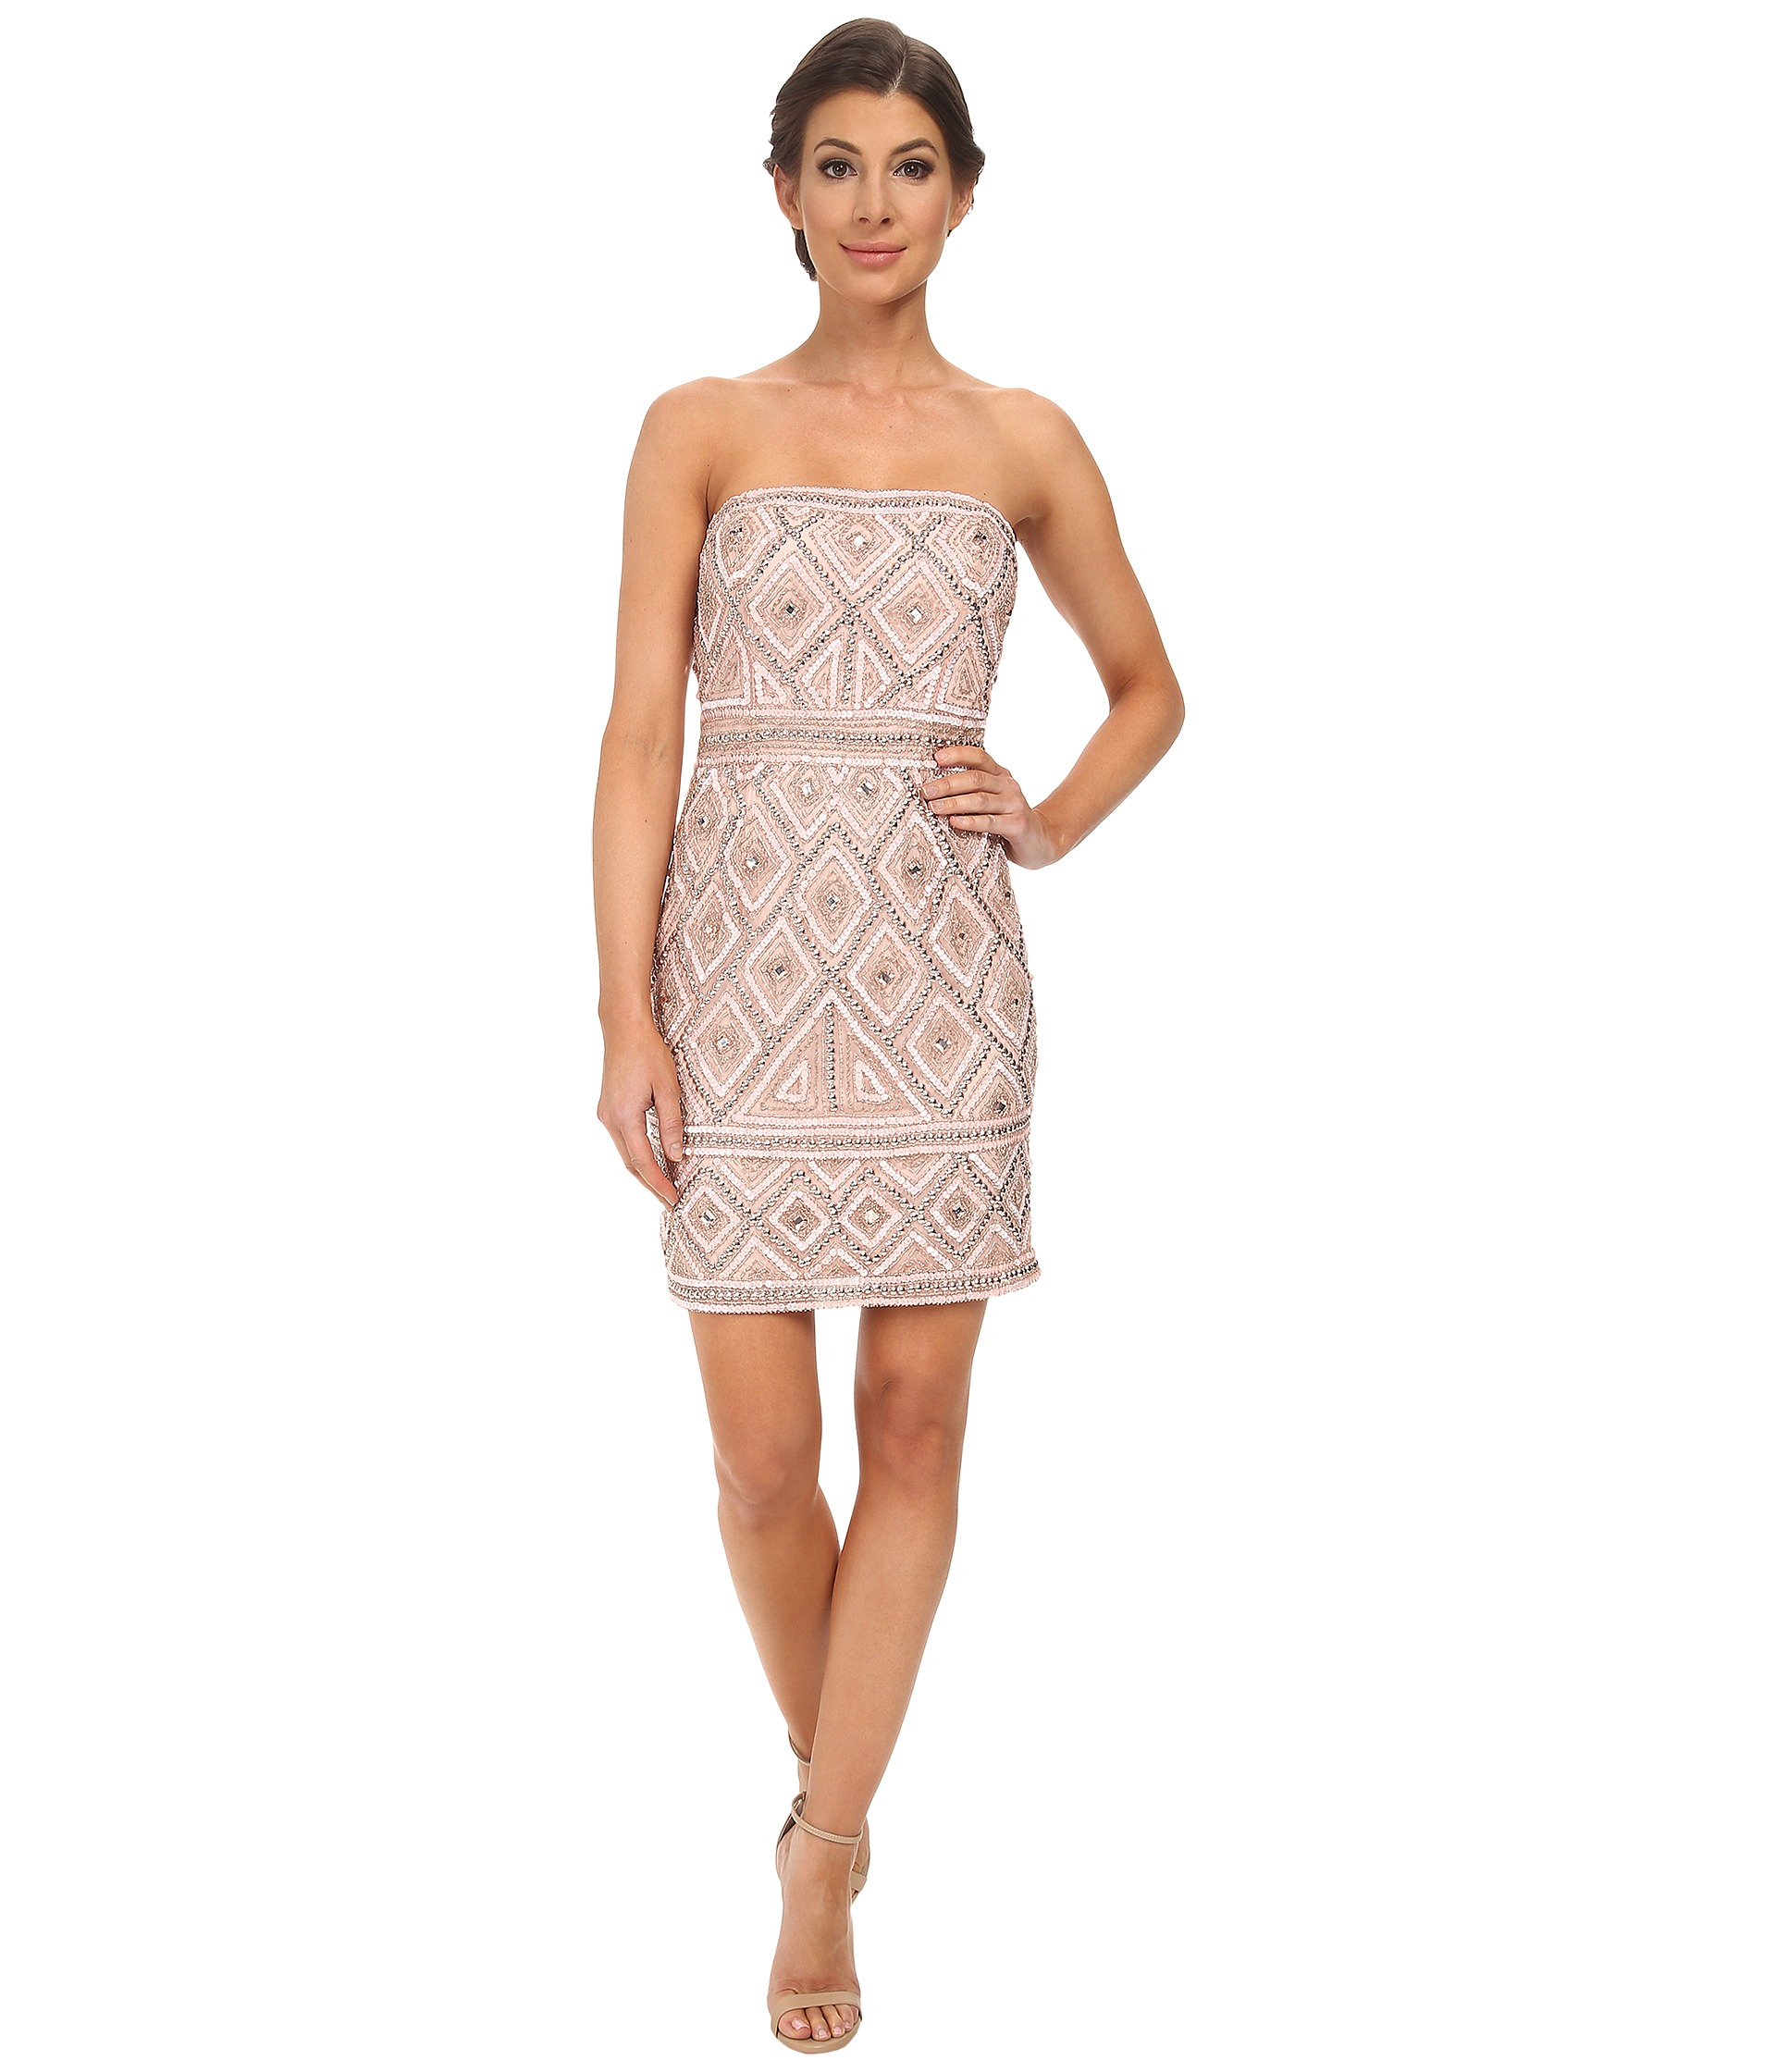 e699902db37a Adrianna Papell Strapless Beaded Dress in Pink - Lyst